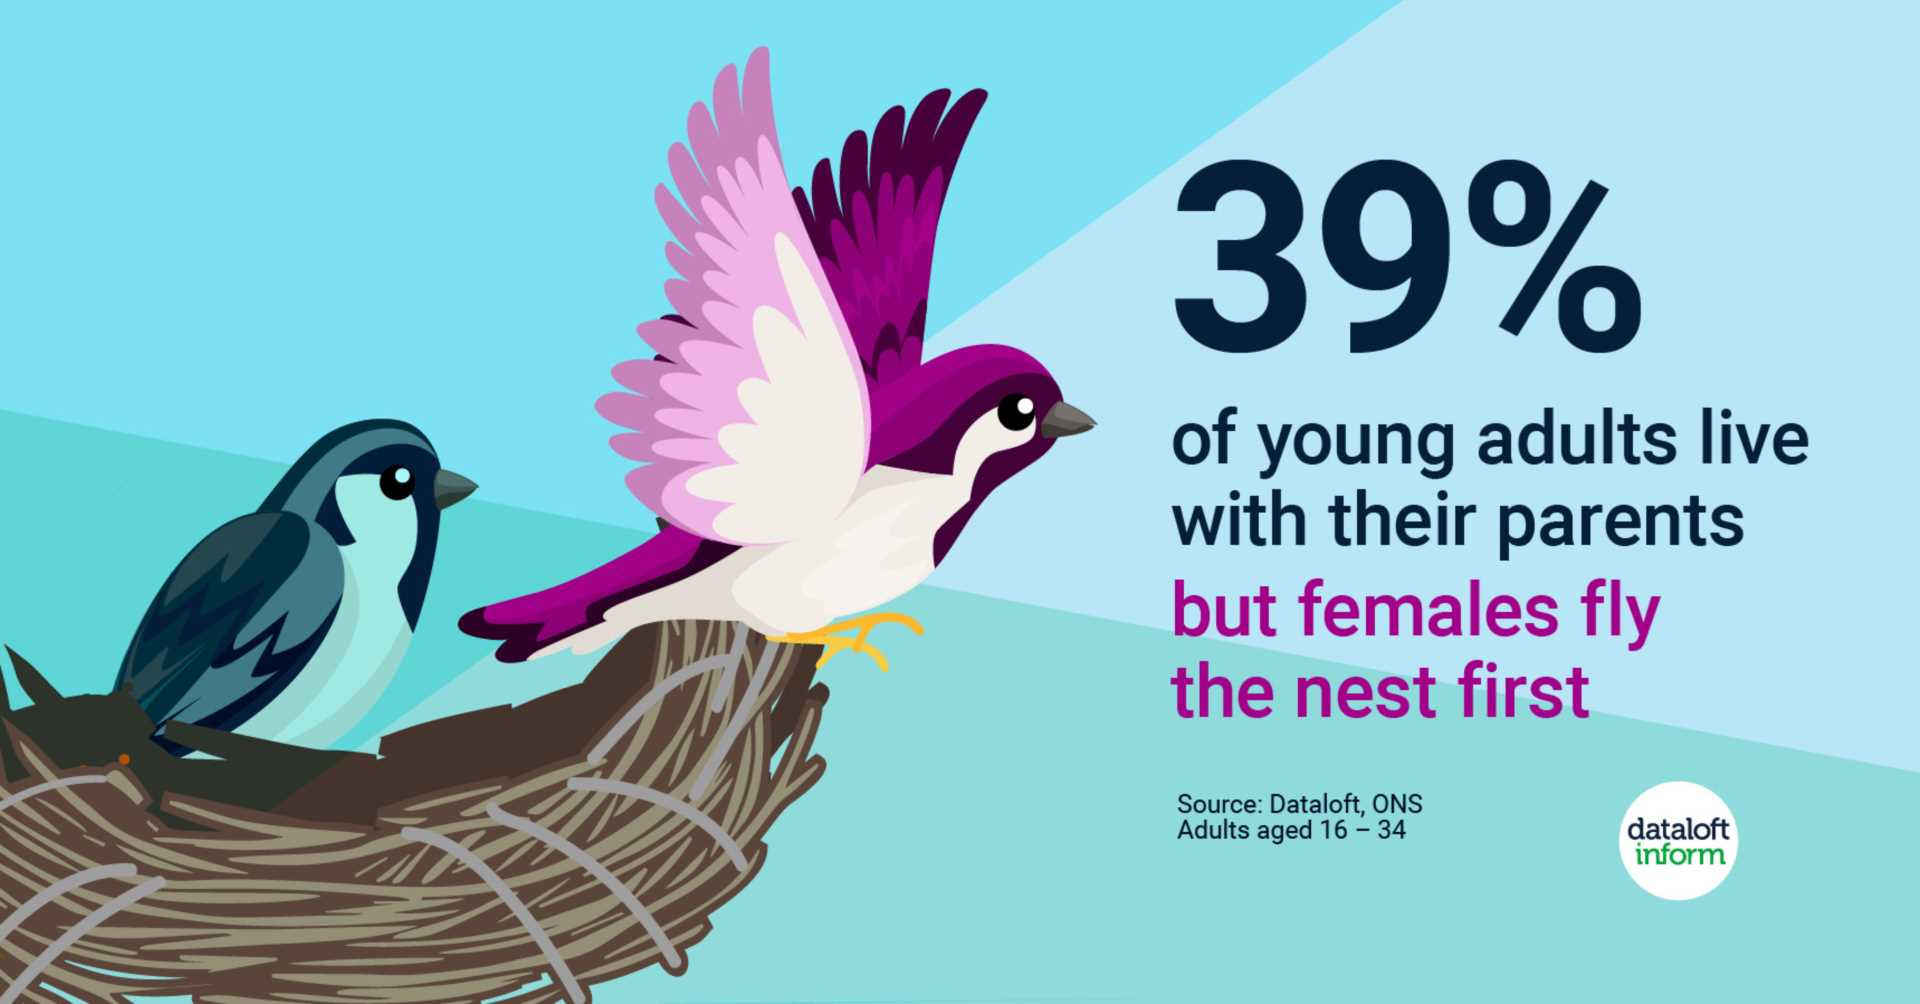 Females fly the nest first!